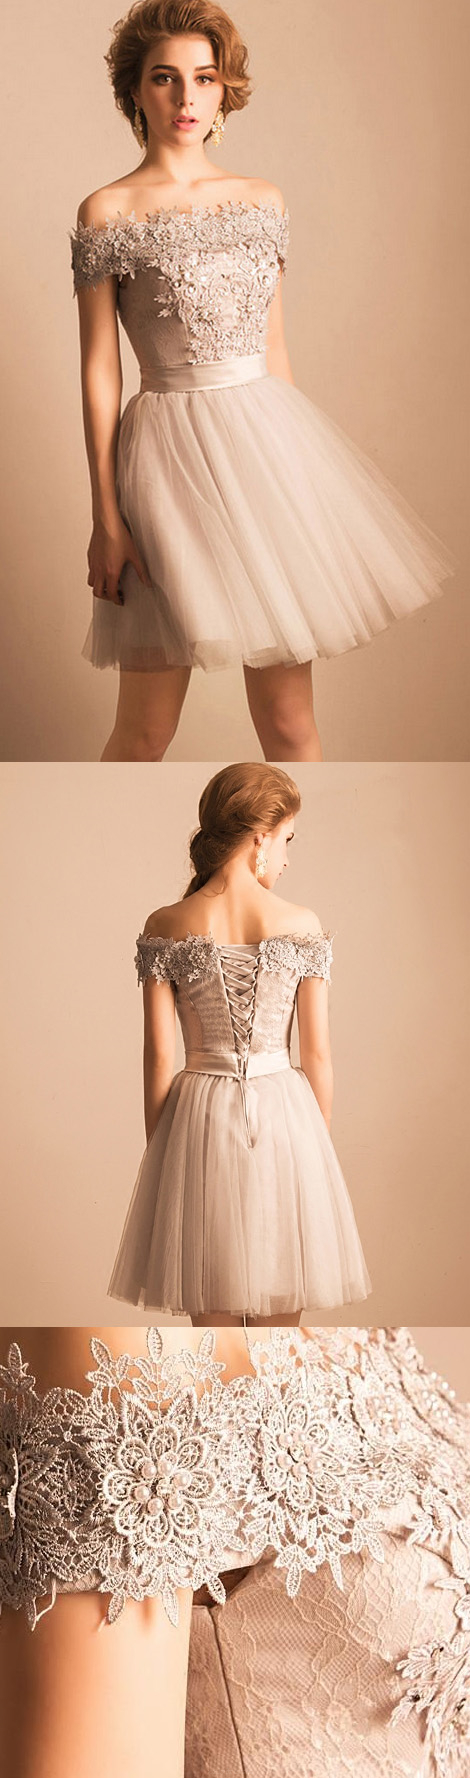 homecoming dress offtheshoulder lace short prom dress party